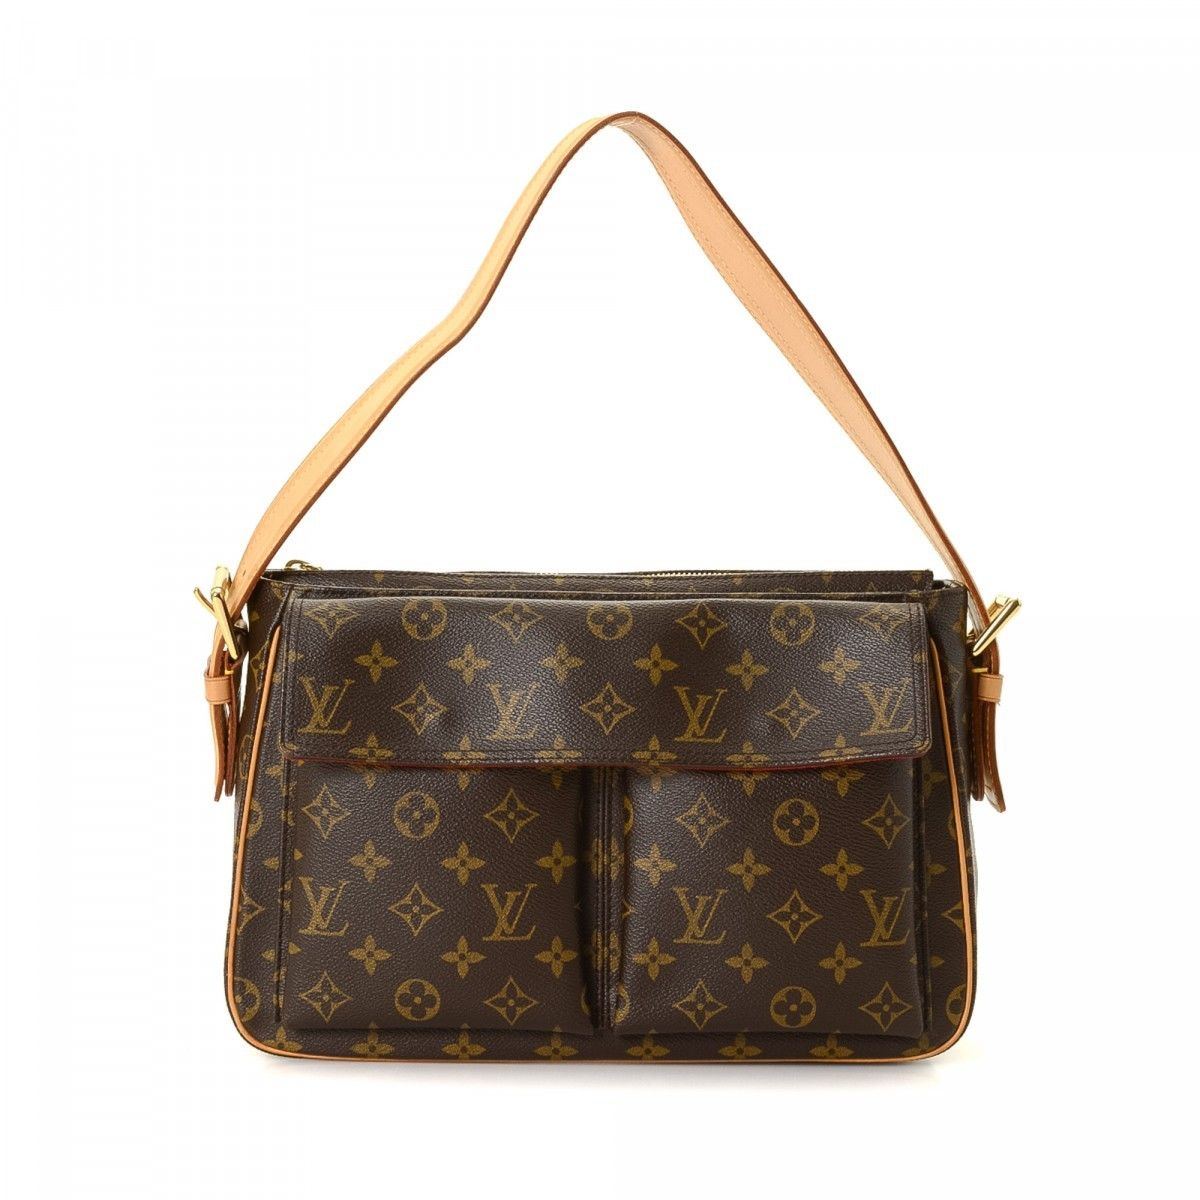 Louis Vuitton Cite Gm Monogram Canvas Shoulder Bag obBV0J